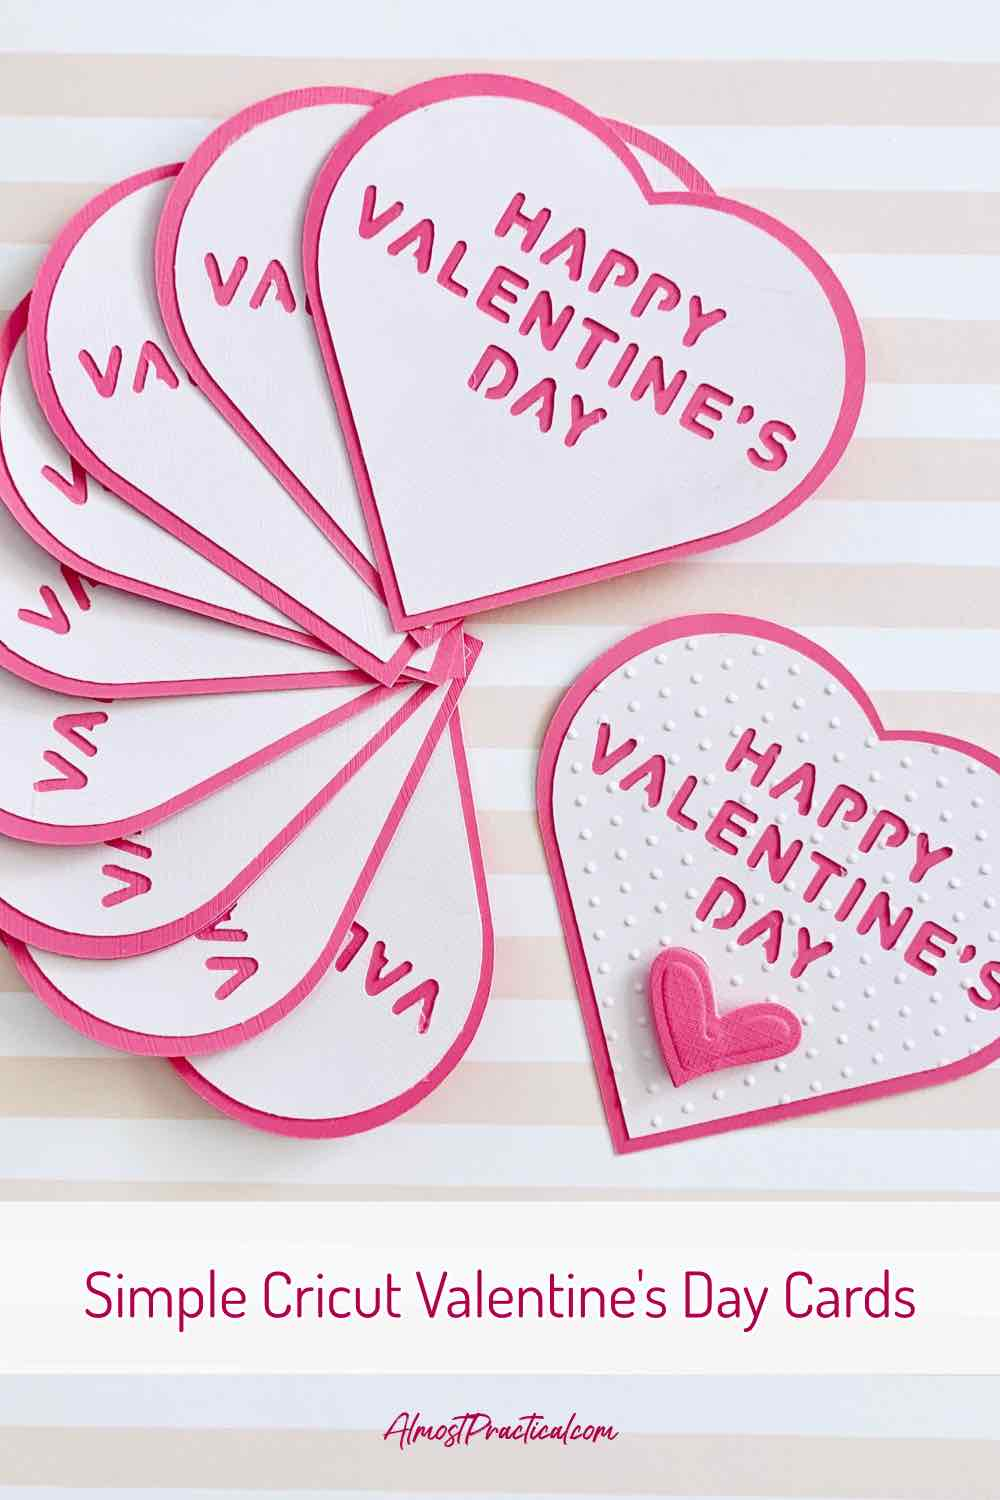 Here are some Valentine's Day cards that you can make on your Cricut machine. They are perfect for teens who want something simple and not too kid like. These heart shaped card have just two layers with a chunky easy to cut out font.